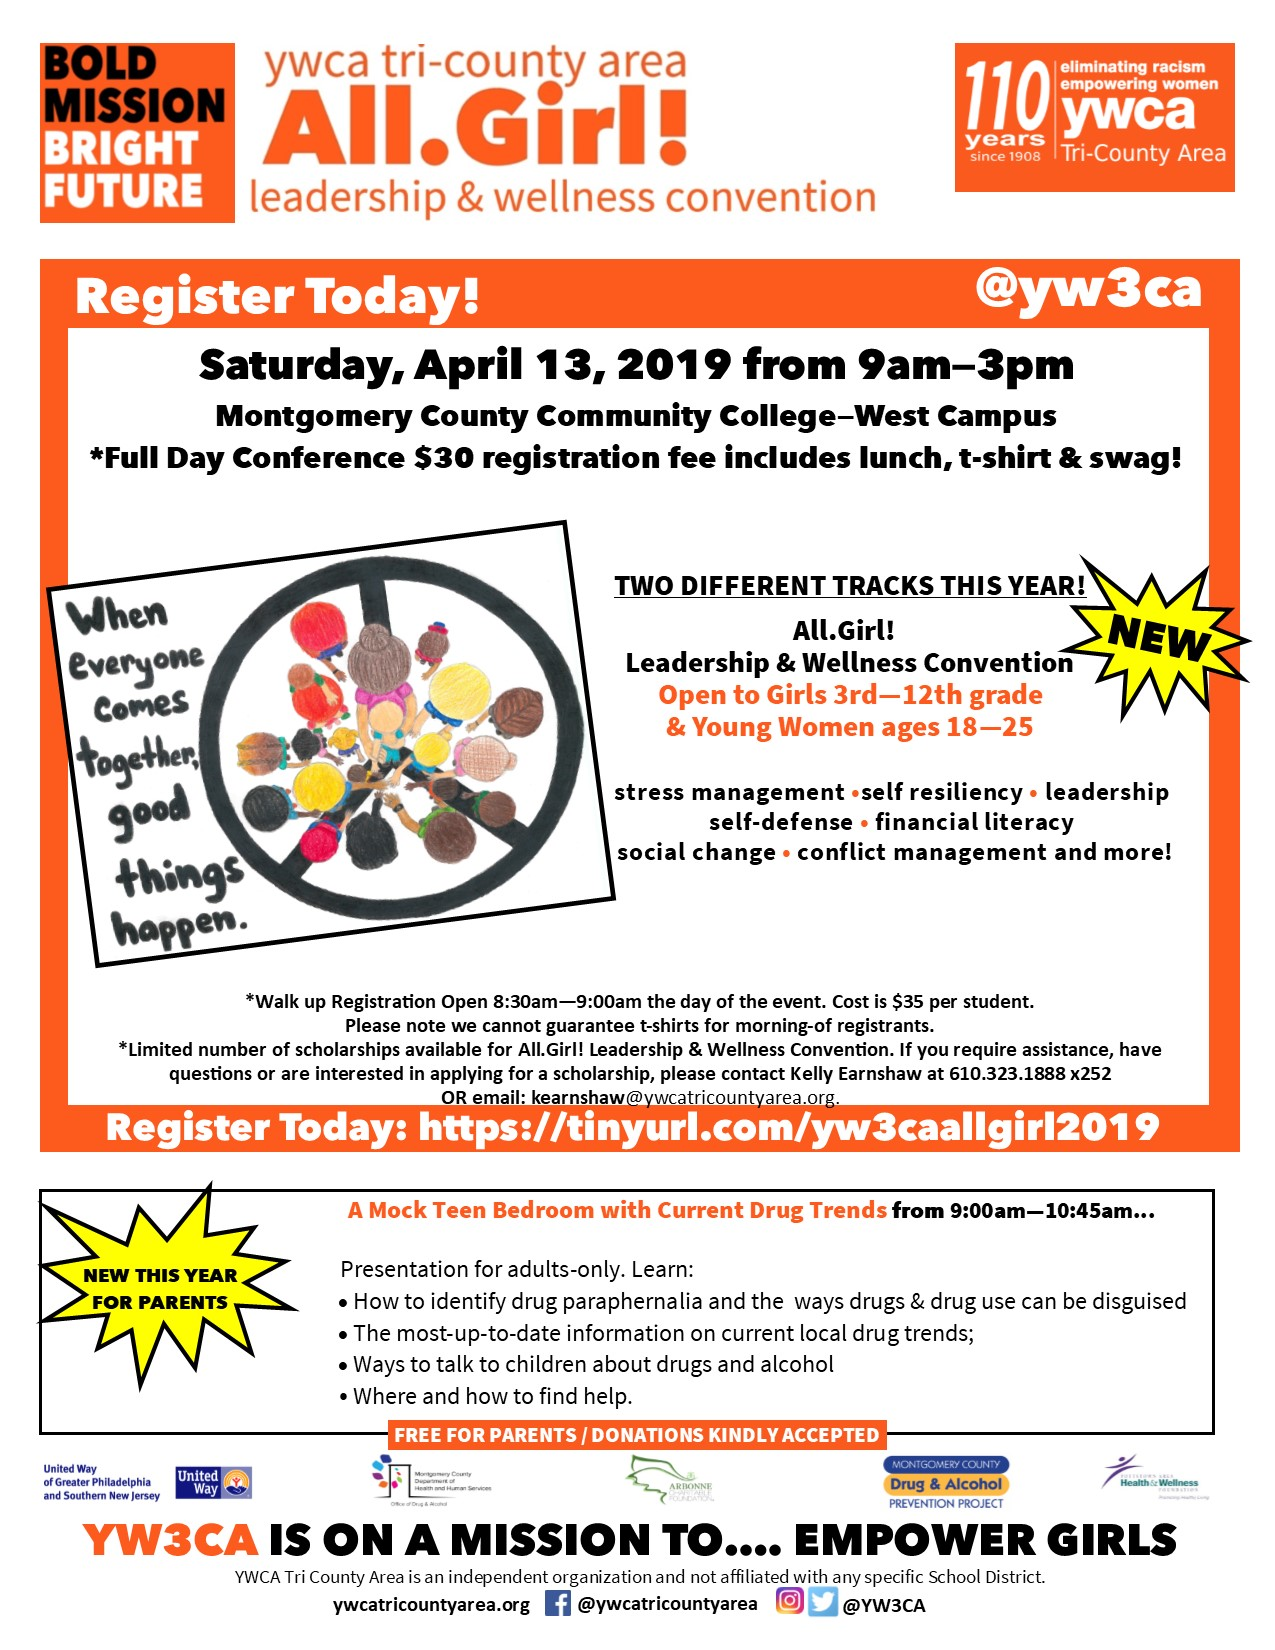 YWCA- 2019 All Girl Leadership & Wellness Convention